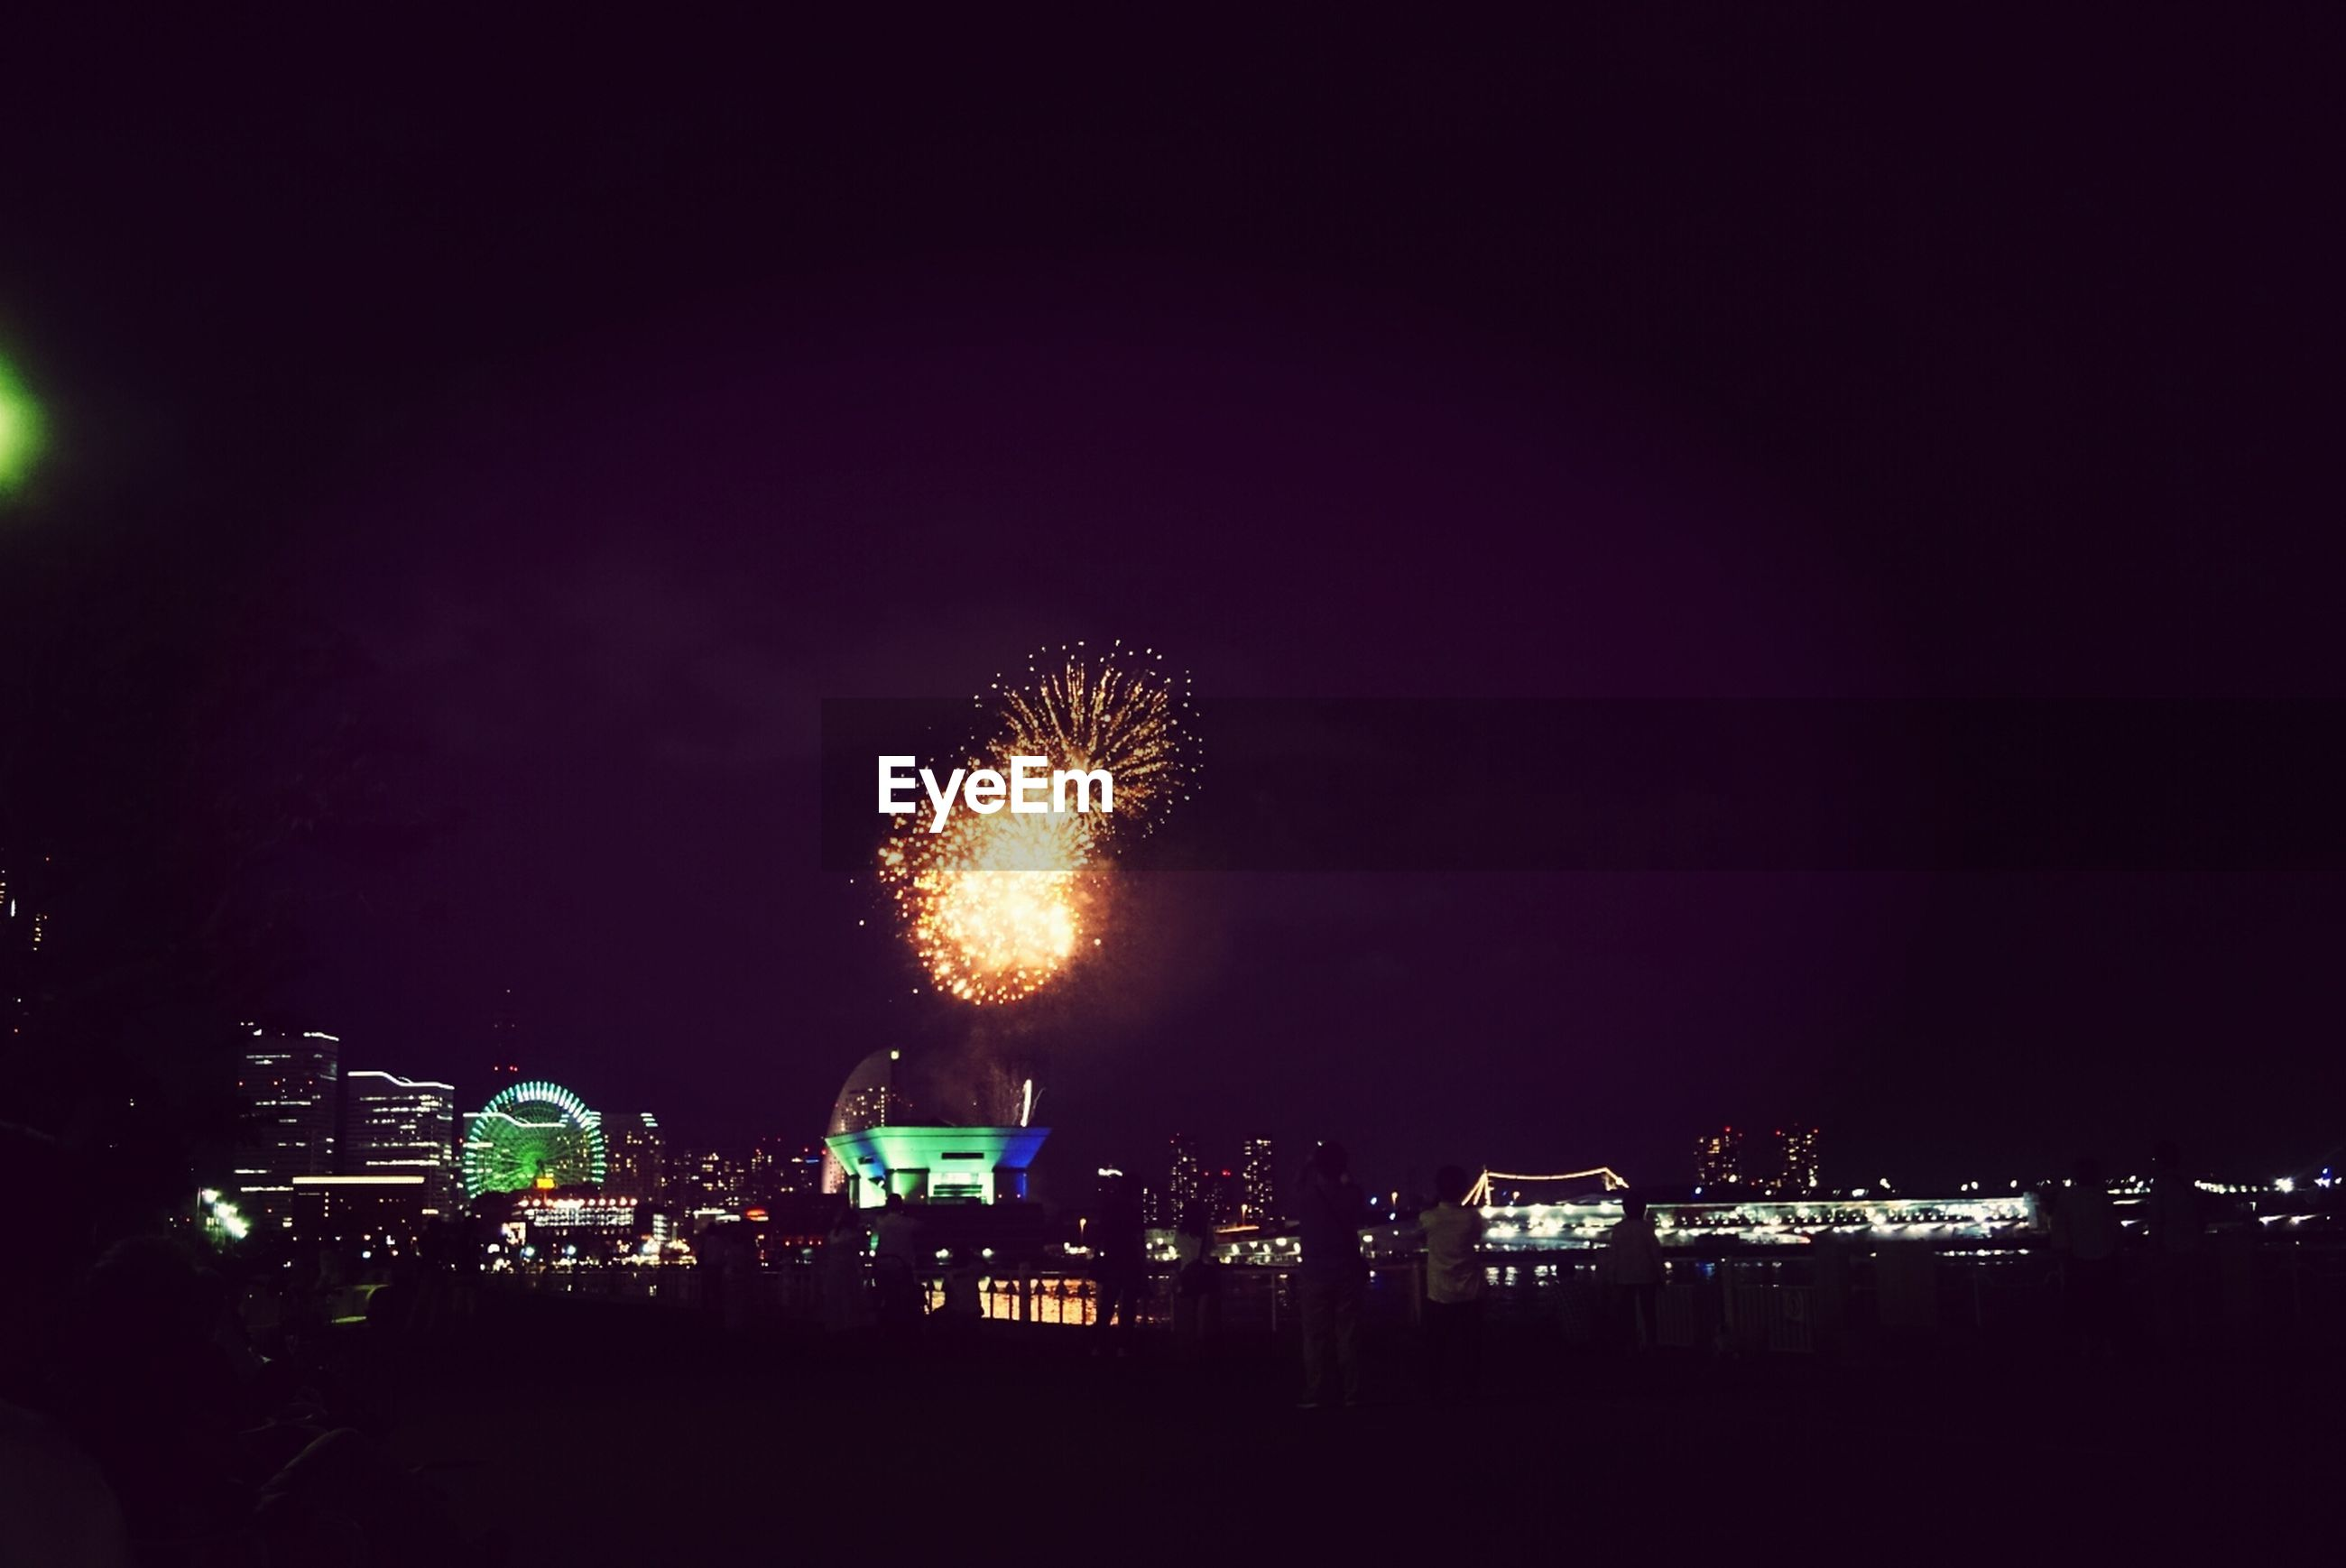 night, illuminated, glowing, long exposure, firework display, exploding, firework - man made object, celebration, sparks, motion, arts culture and entertainment, building exterior, sky, fire - natural phenomenon, clear sky, copy space, dark, firework, outdoors, built structure